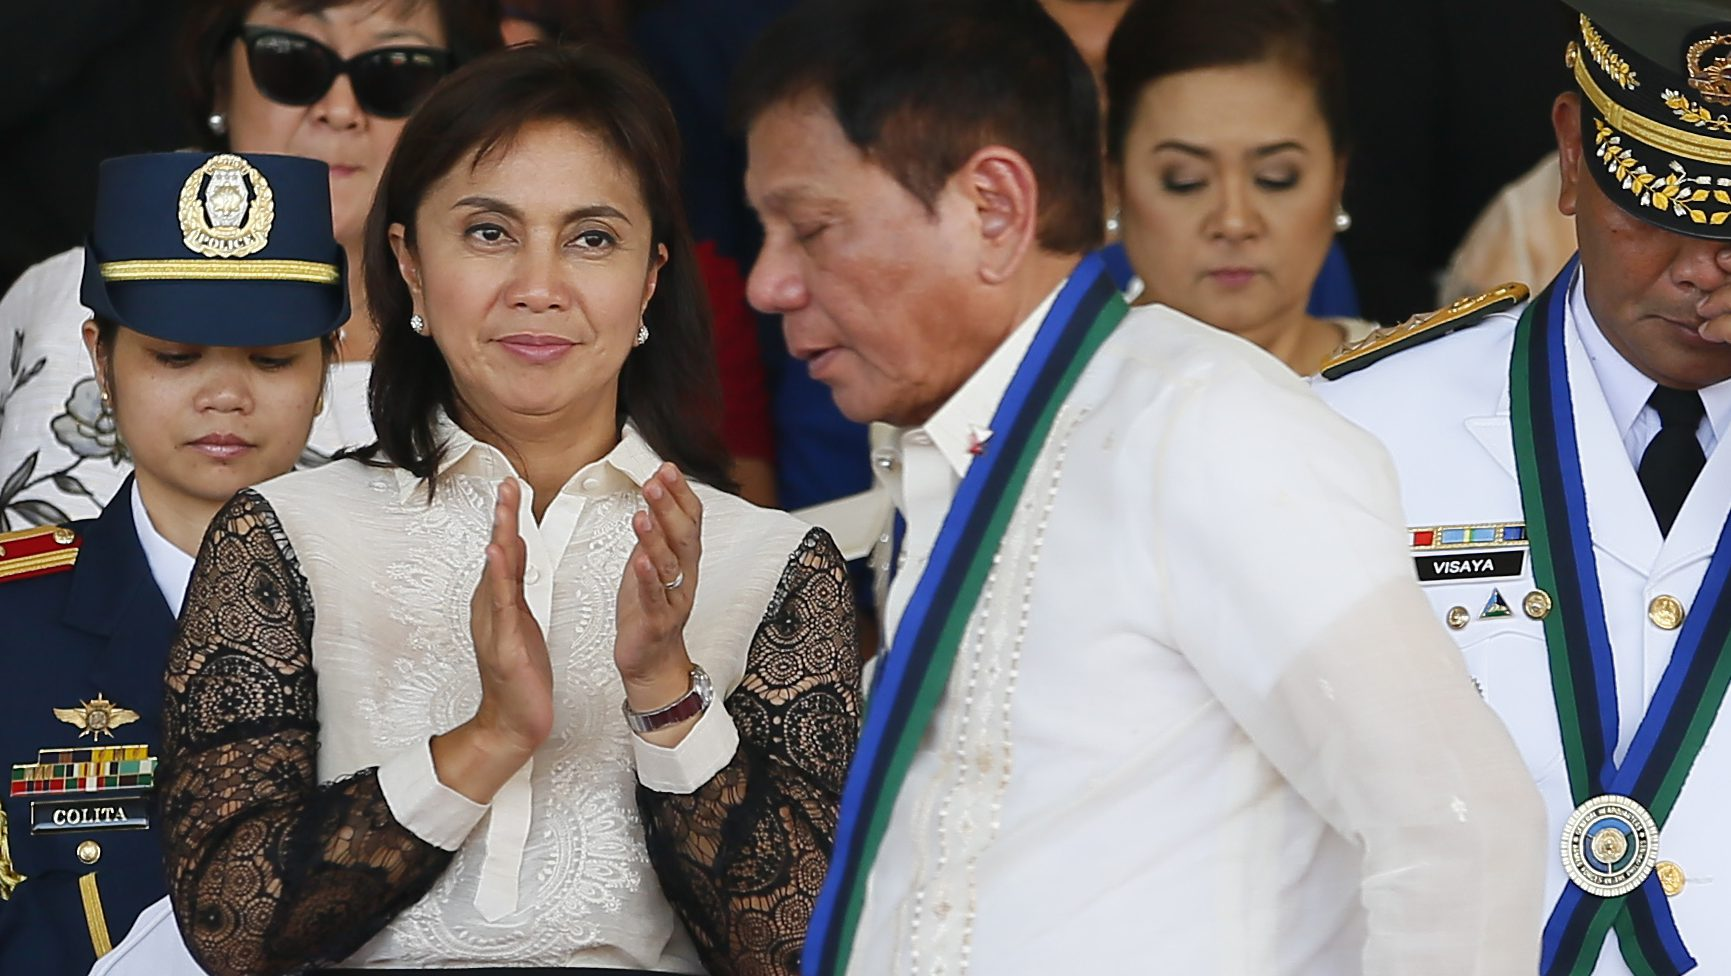 Vice President Leni Robredo applauds as New Philippine President Rodrigo Duterte walks to address the troops during the Change-of-Command ceremony for incoming Armed Forces chief Gen. Ricardo Visaya, right, Friday, July 1, 2016, at Camp Aguinaldo in suburban Quezon city northeast of Manila, Philippines. It was the first meeting between Duterte and Robredo following their separate inaugurals. (Vice President Leni Robredo applauds as New Philippine President Rodrigo Duterte walks to address the troops during the Change-of-Command ceremony for incoming Armed Forces chief Gen. Ricardo Visaya, right, Friday, July 1, 2016, at Camp Aguinaldo in suburban Quezon city northeast of Manila, Philippines. It was the first meeting between Duterte and Robredo following their separate inaugurals. (AP Photo/Bullit Marquez))